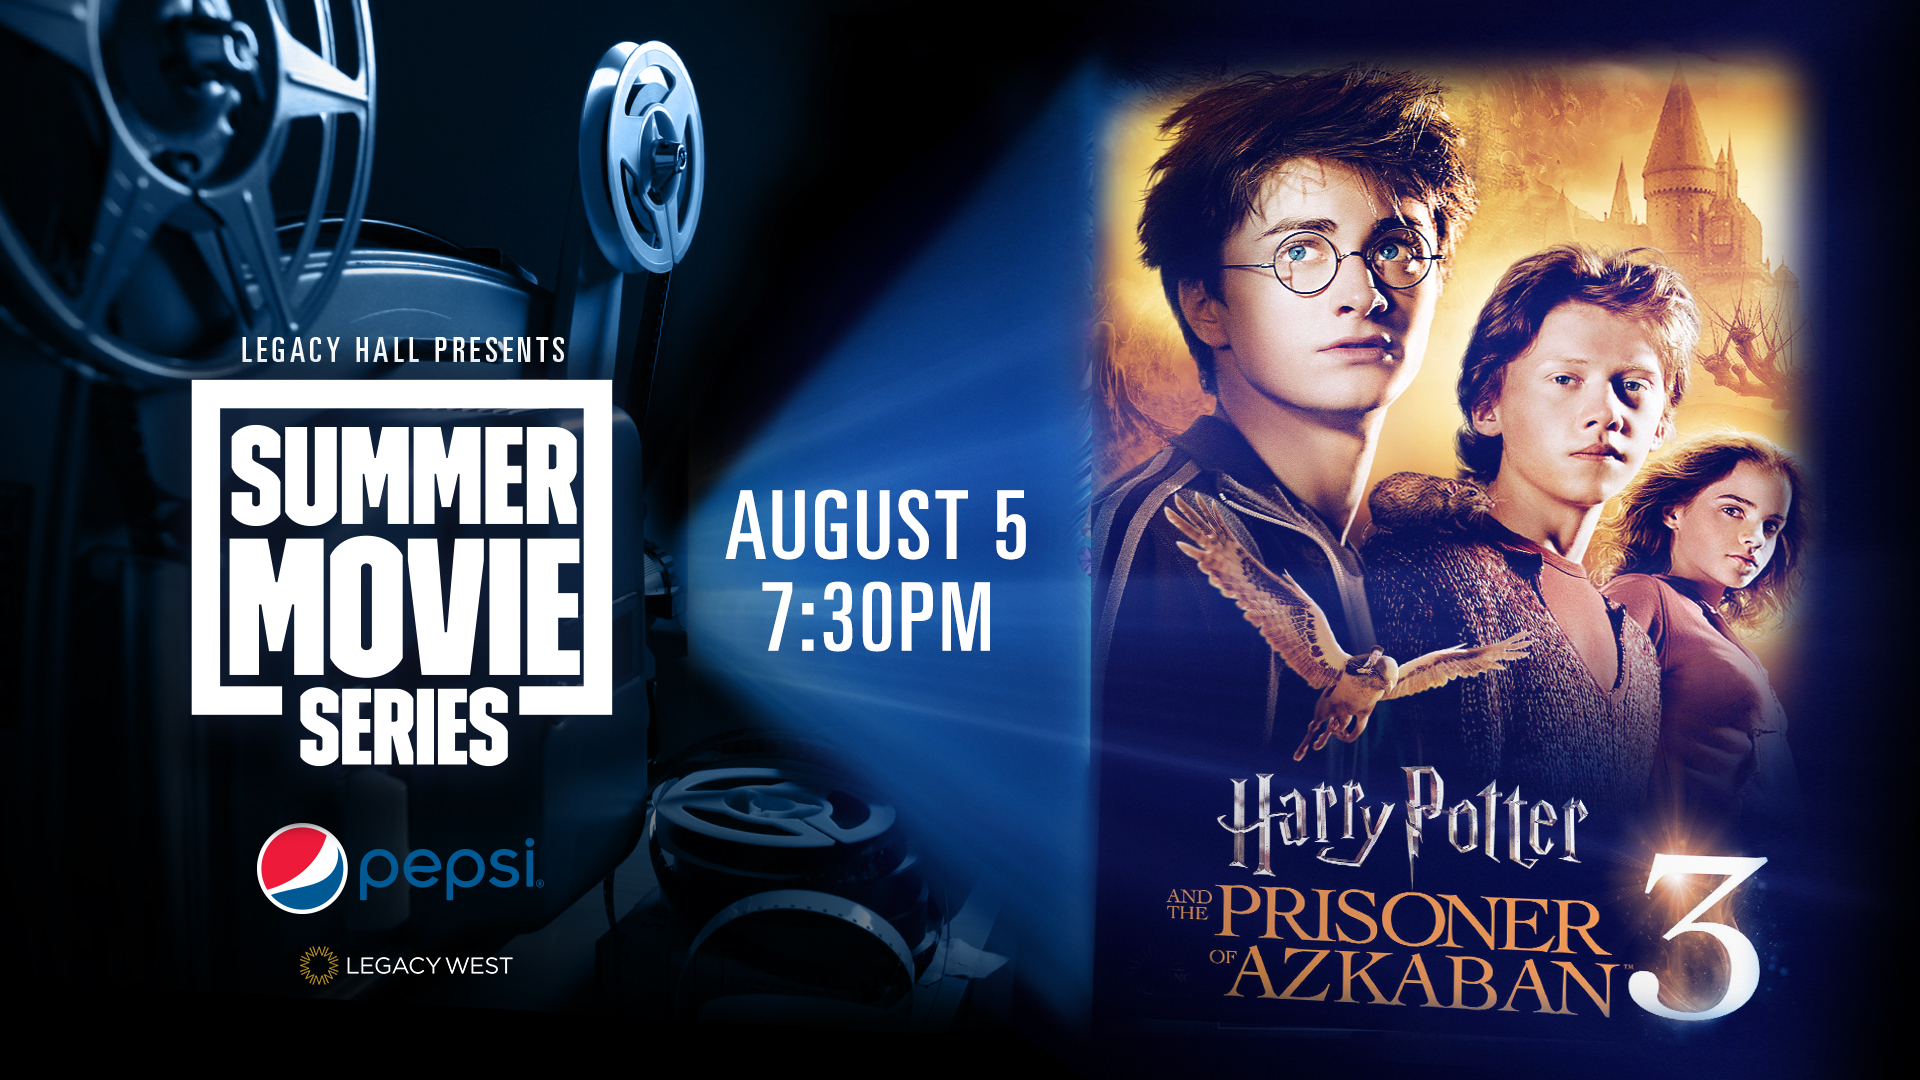 Promo image of Pepsi Summer Movie Series: Harry Potter & the Prisoner of Azkaban